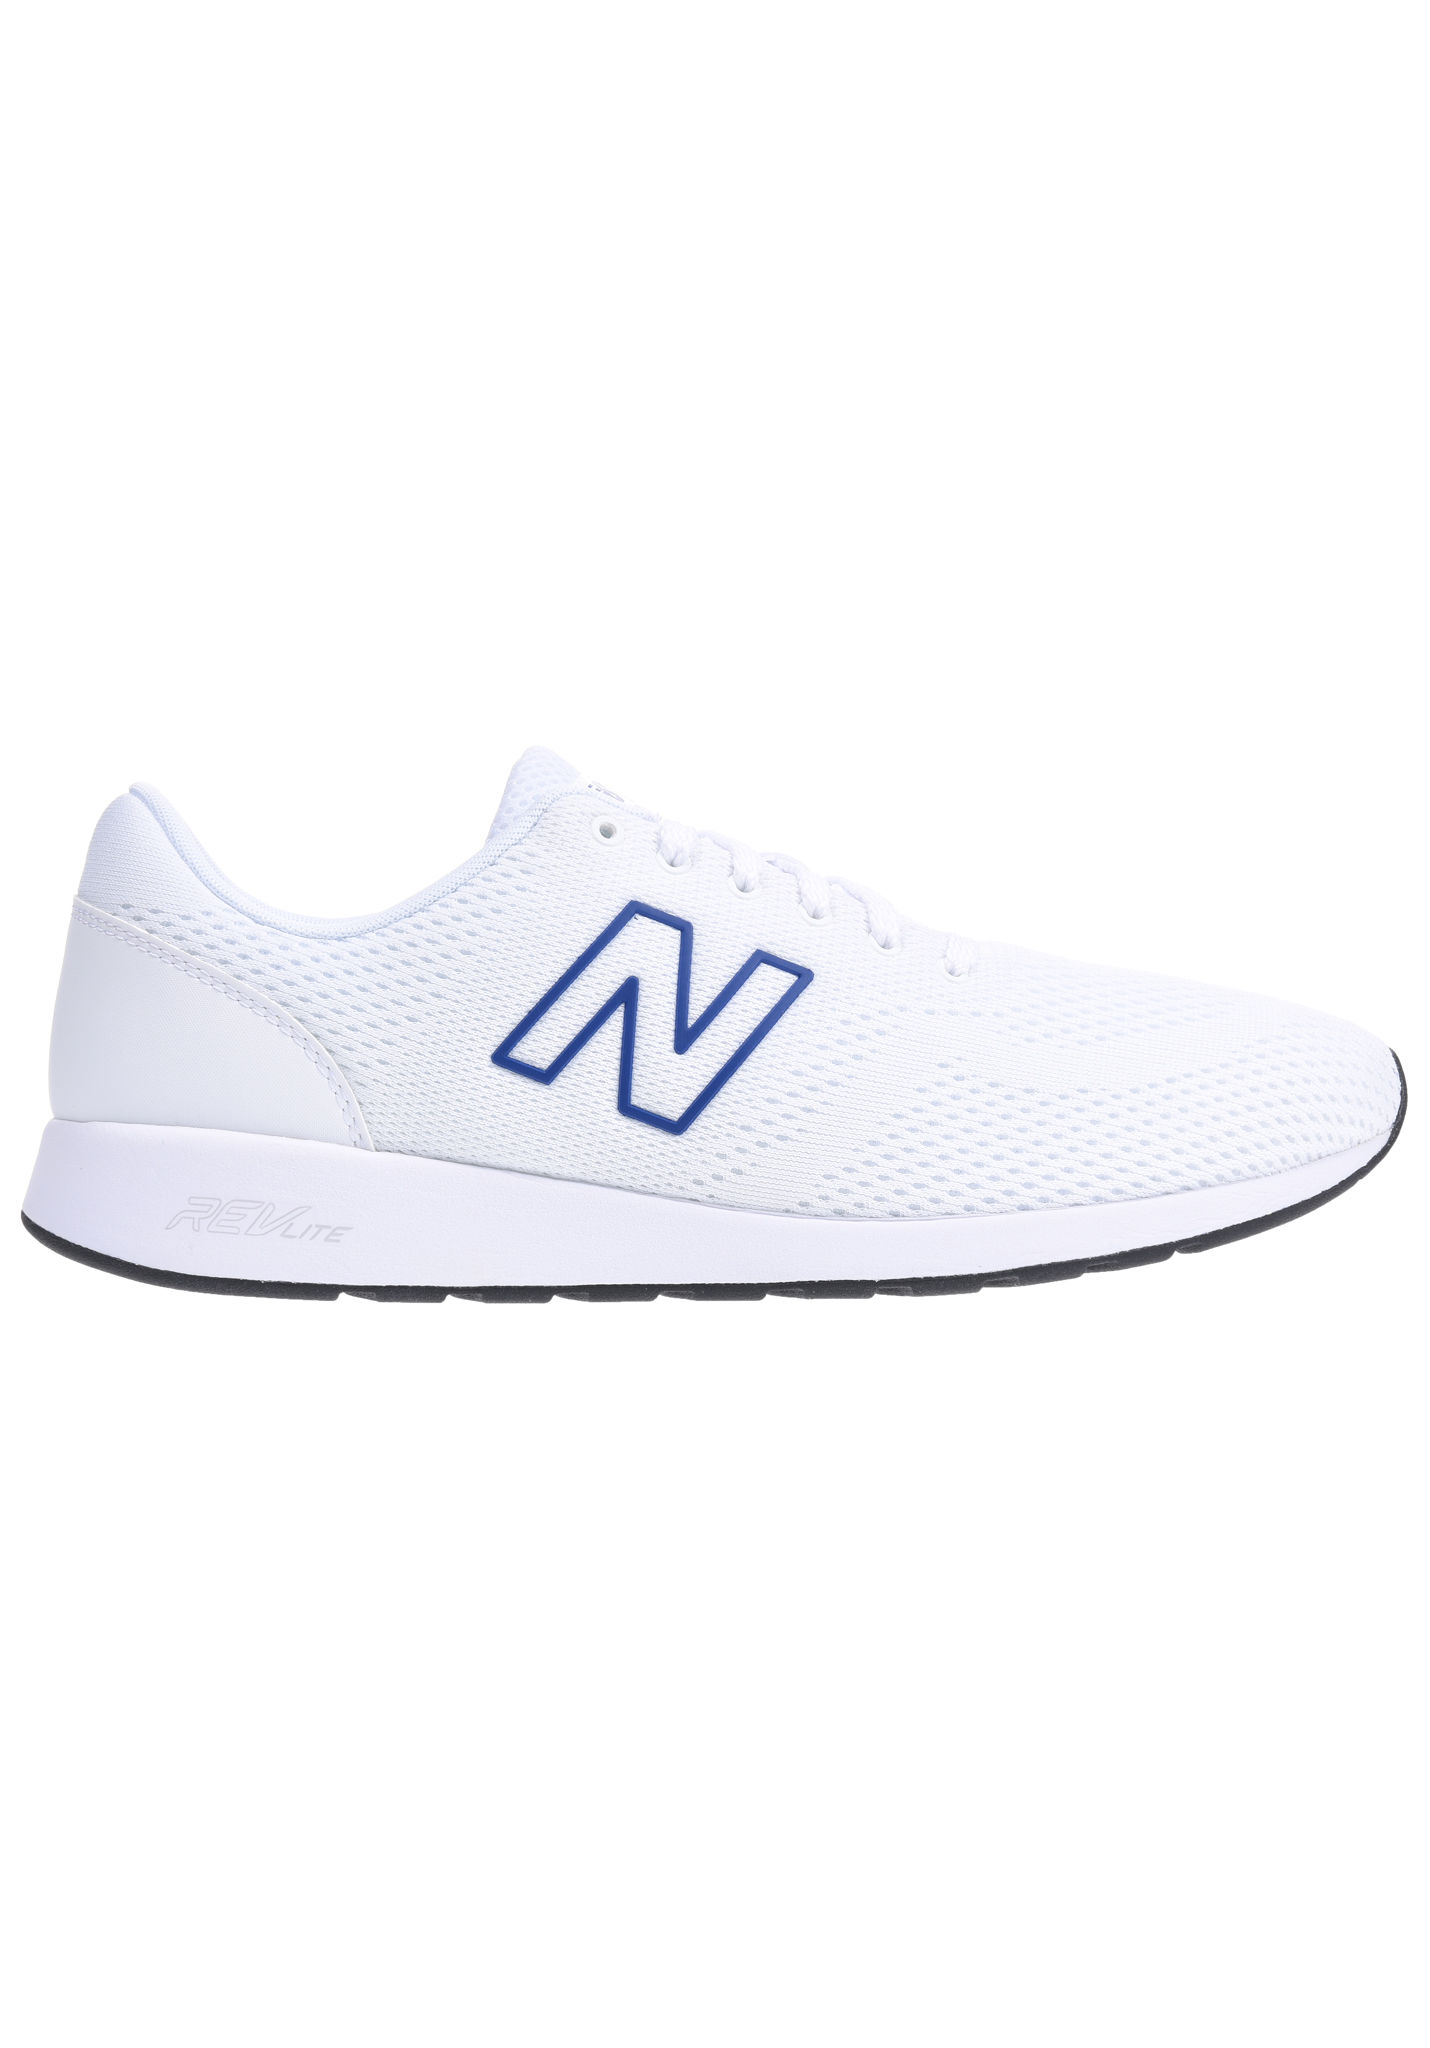 c852370e6cf NEW BALANCE MRL420 D - Zapatillas para Hombres - Blanco - Planet Sports